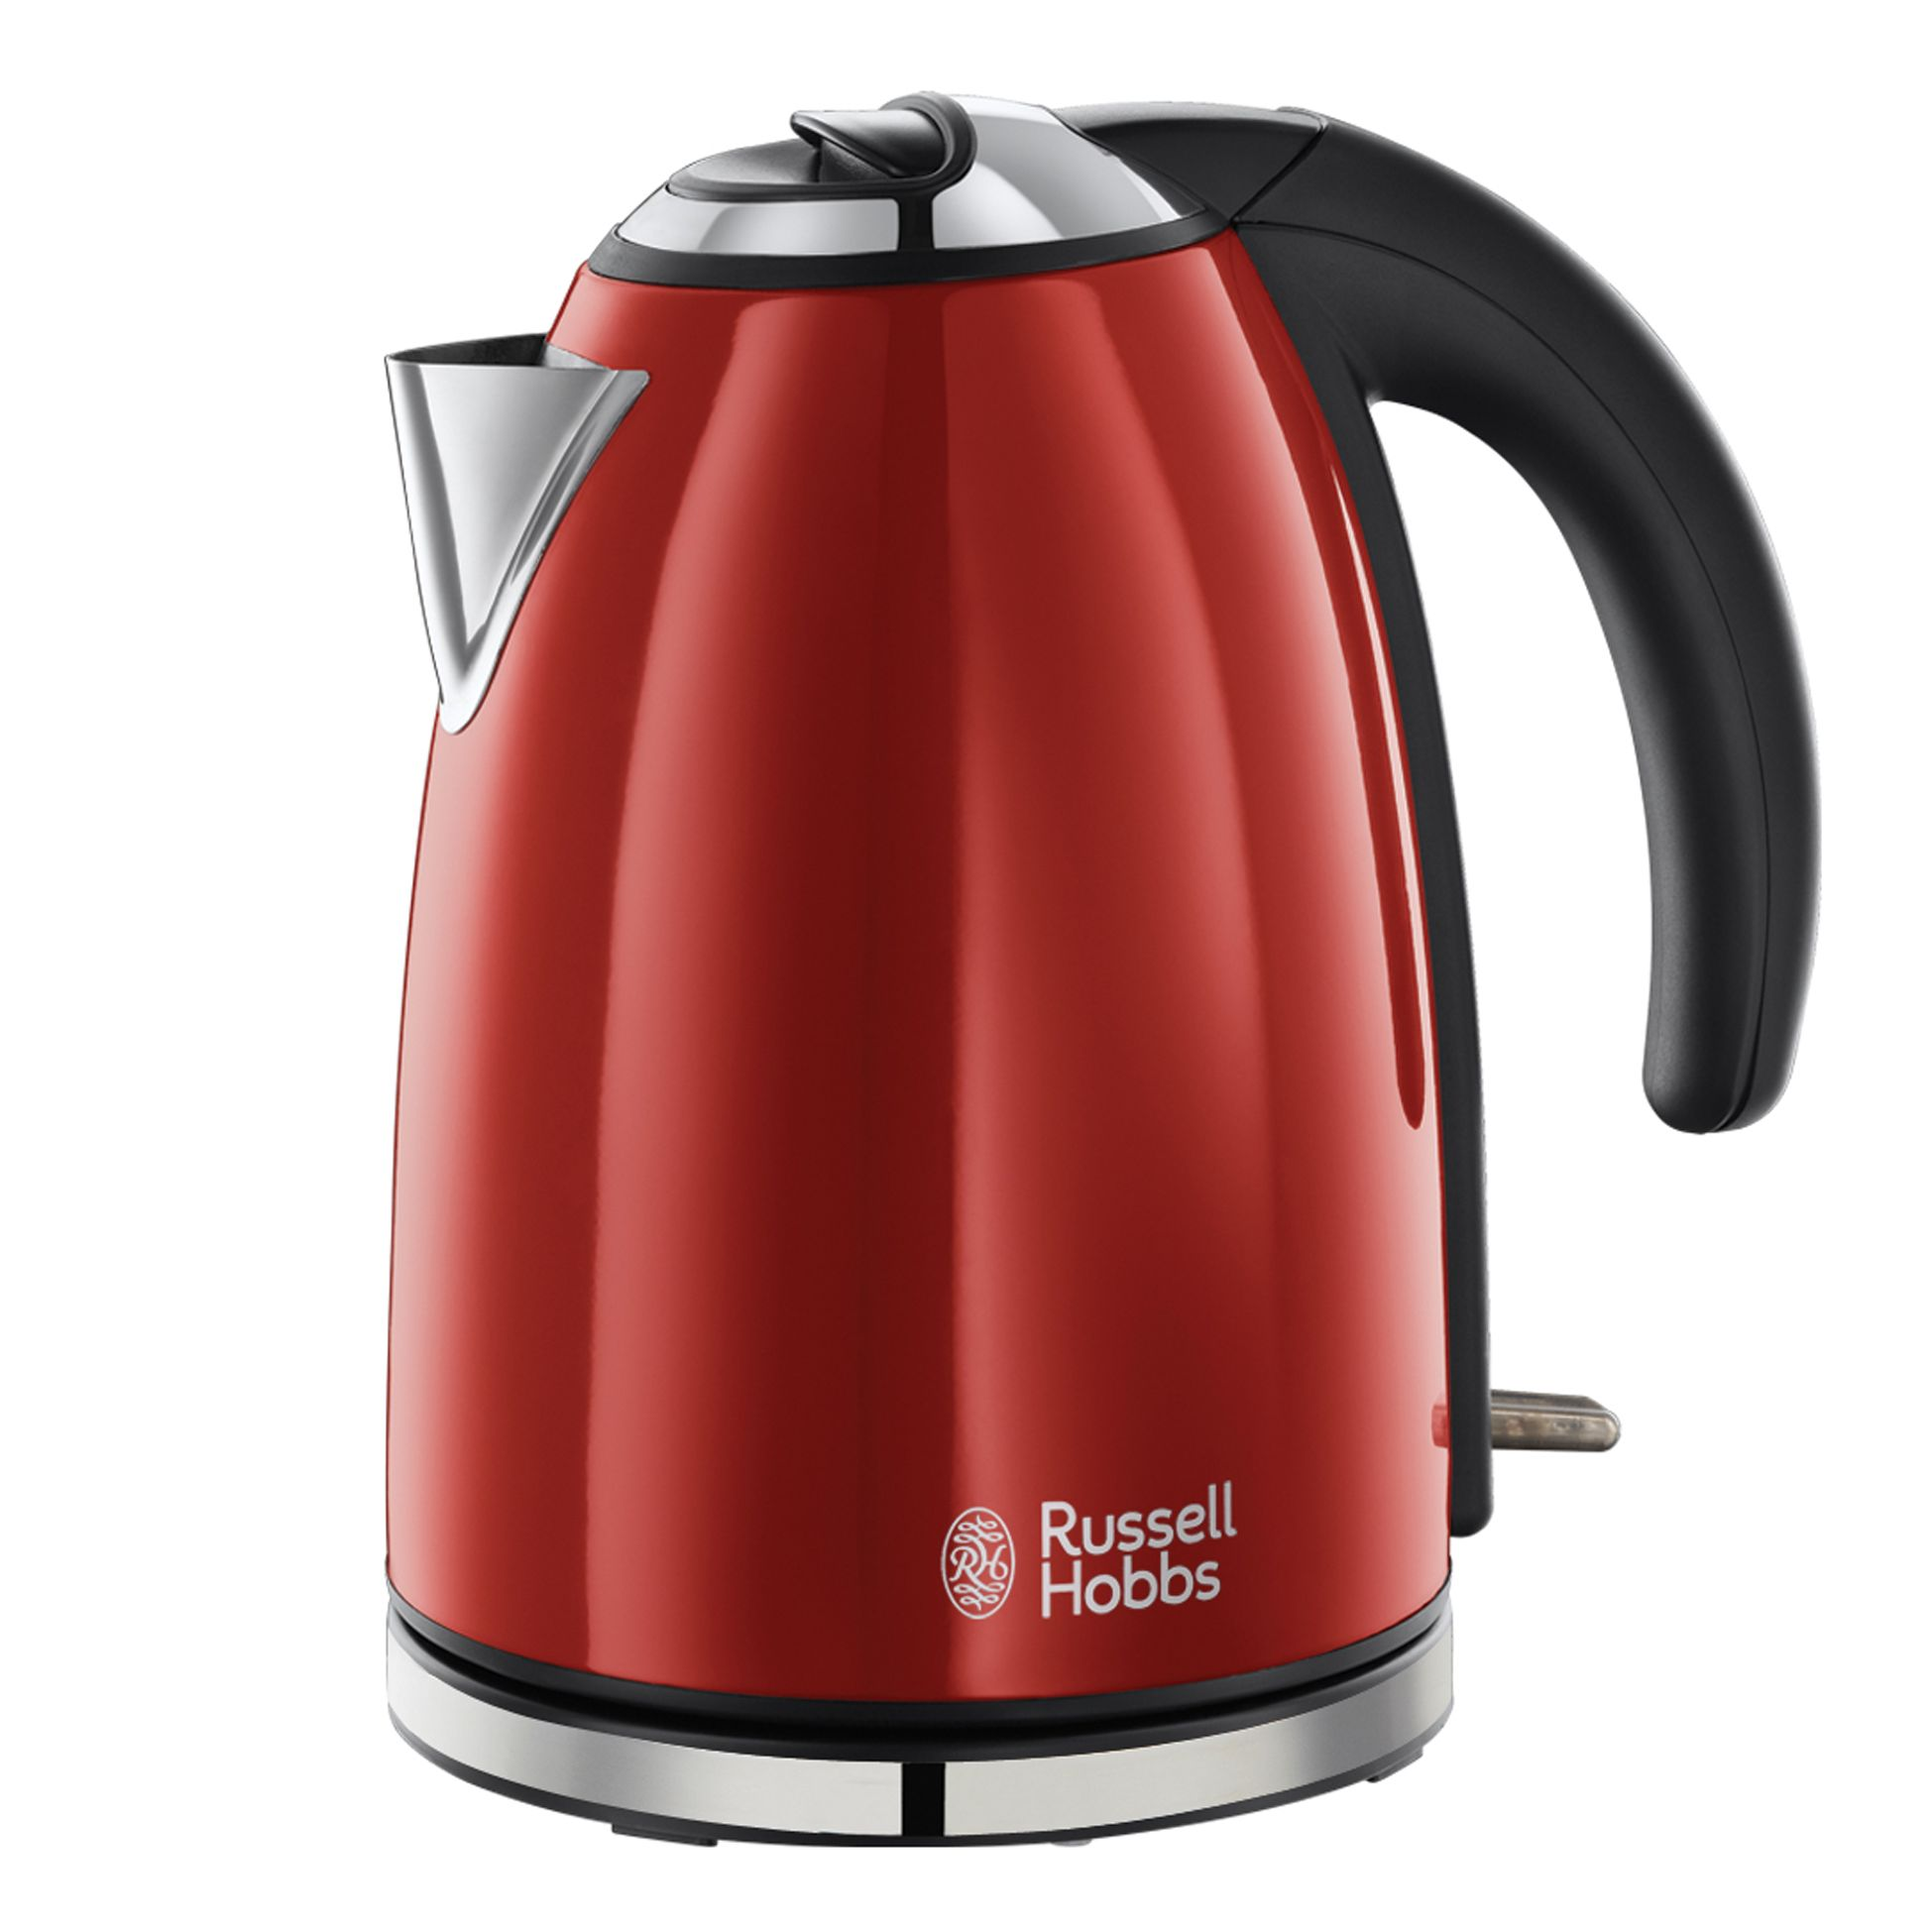 Russell Hobbs Colours Kettle at John